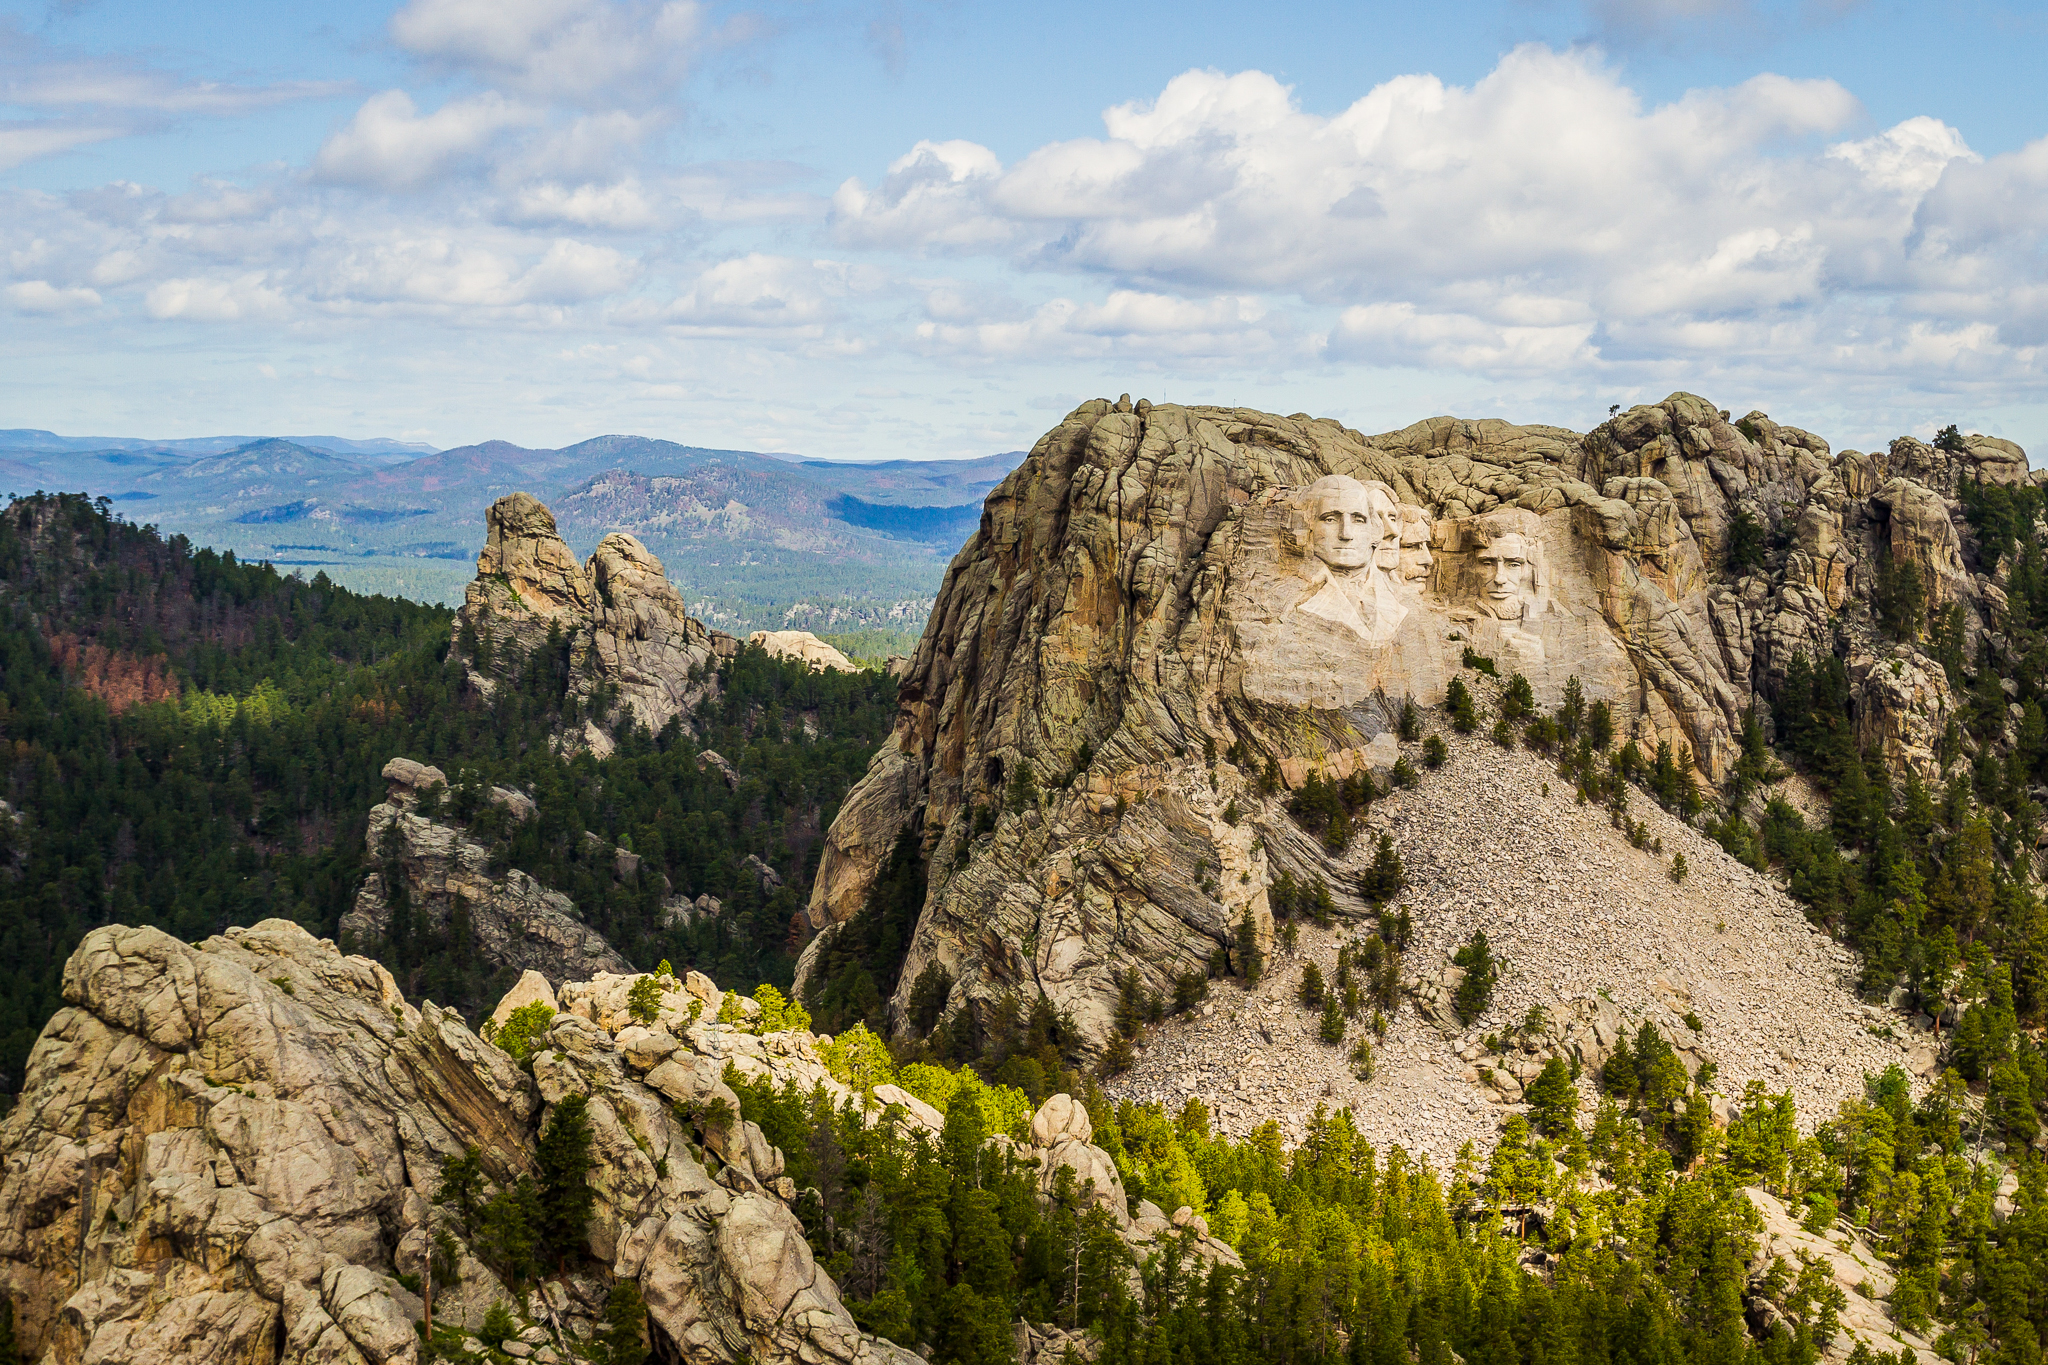 Majestic figures of George Washington, Thomas Jefferson, Theodore Roosevelt and Abraham Lincoln, surrounded by the beauty of the Black Hills of South Dakota, USA